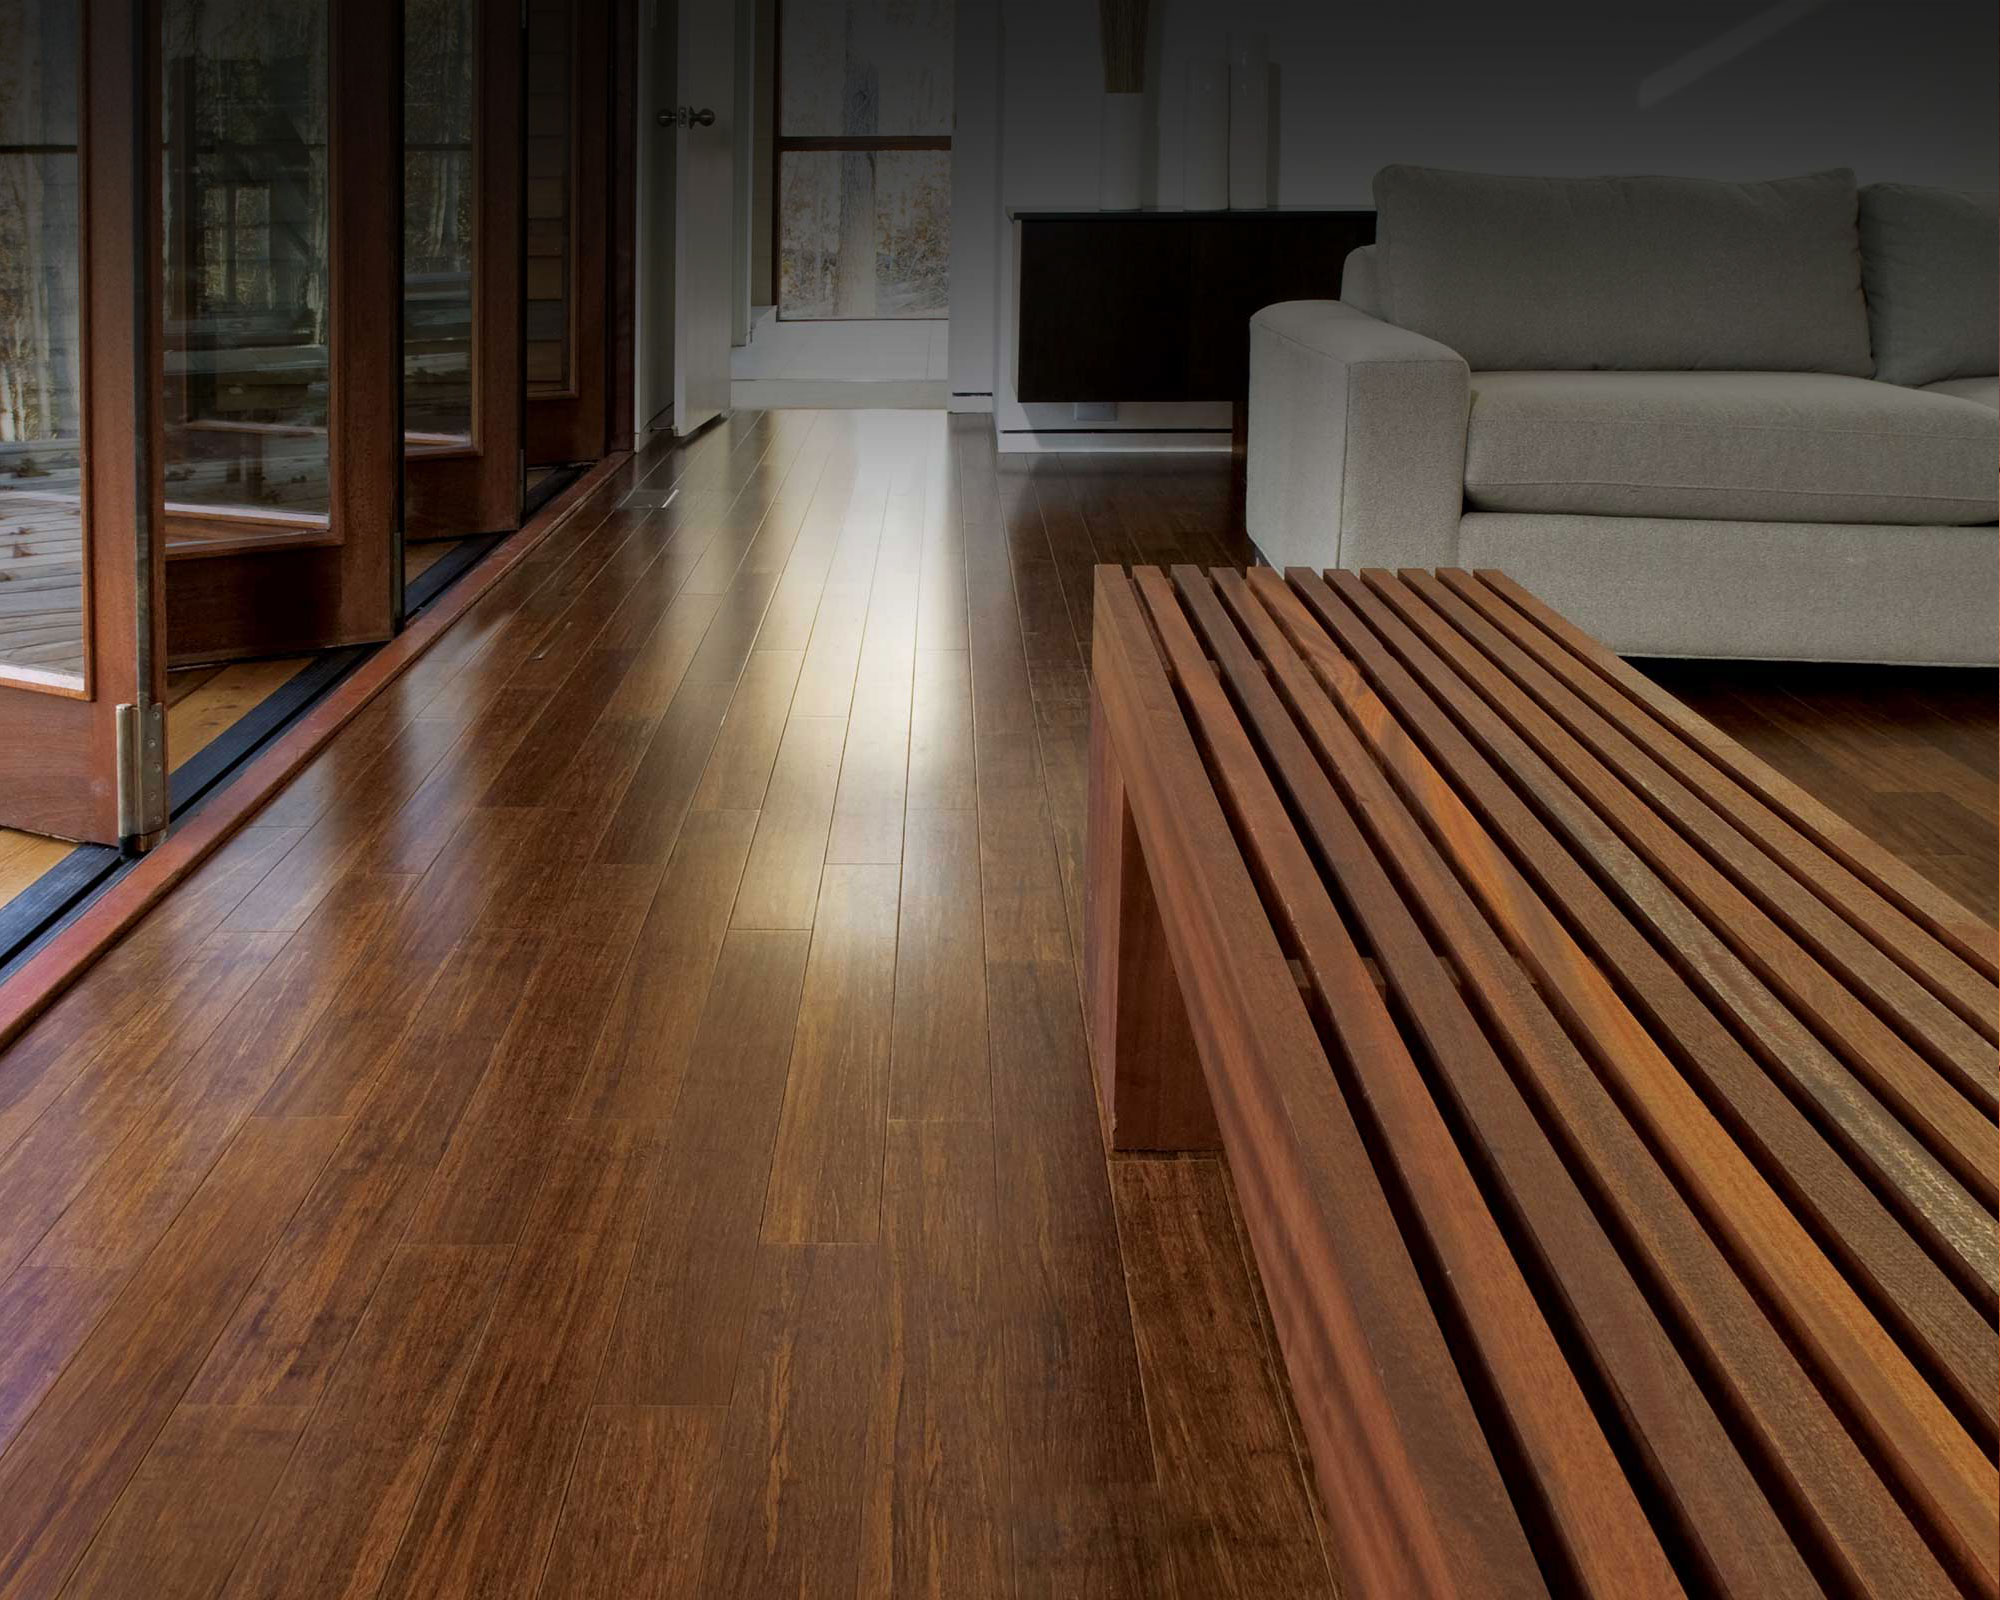 Melbourne Top Flooring S Bamboo Floors Installation Guide